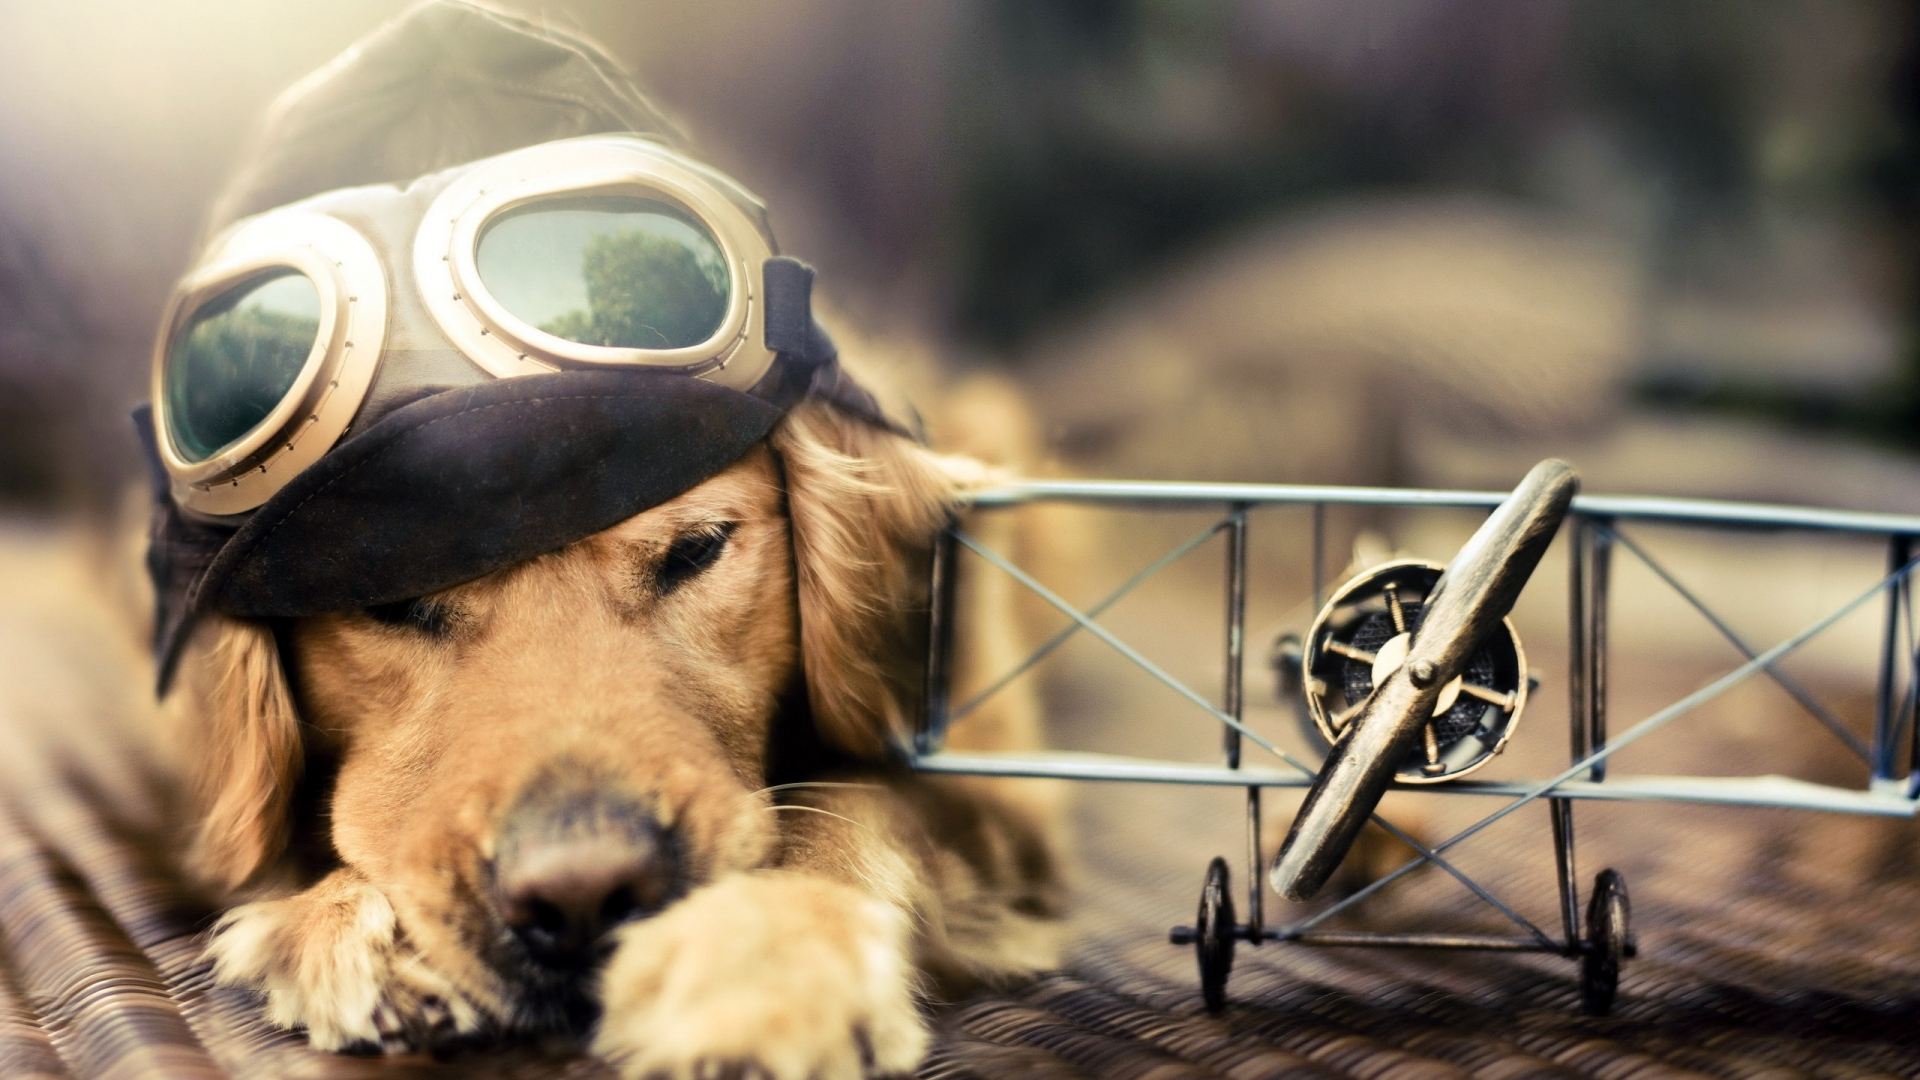 Hd wallpaper dog - Download Free Modern Adorable Dog The Wallpapers 1920x1080 Hd